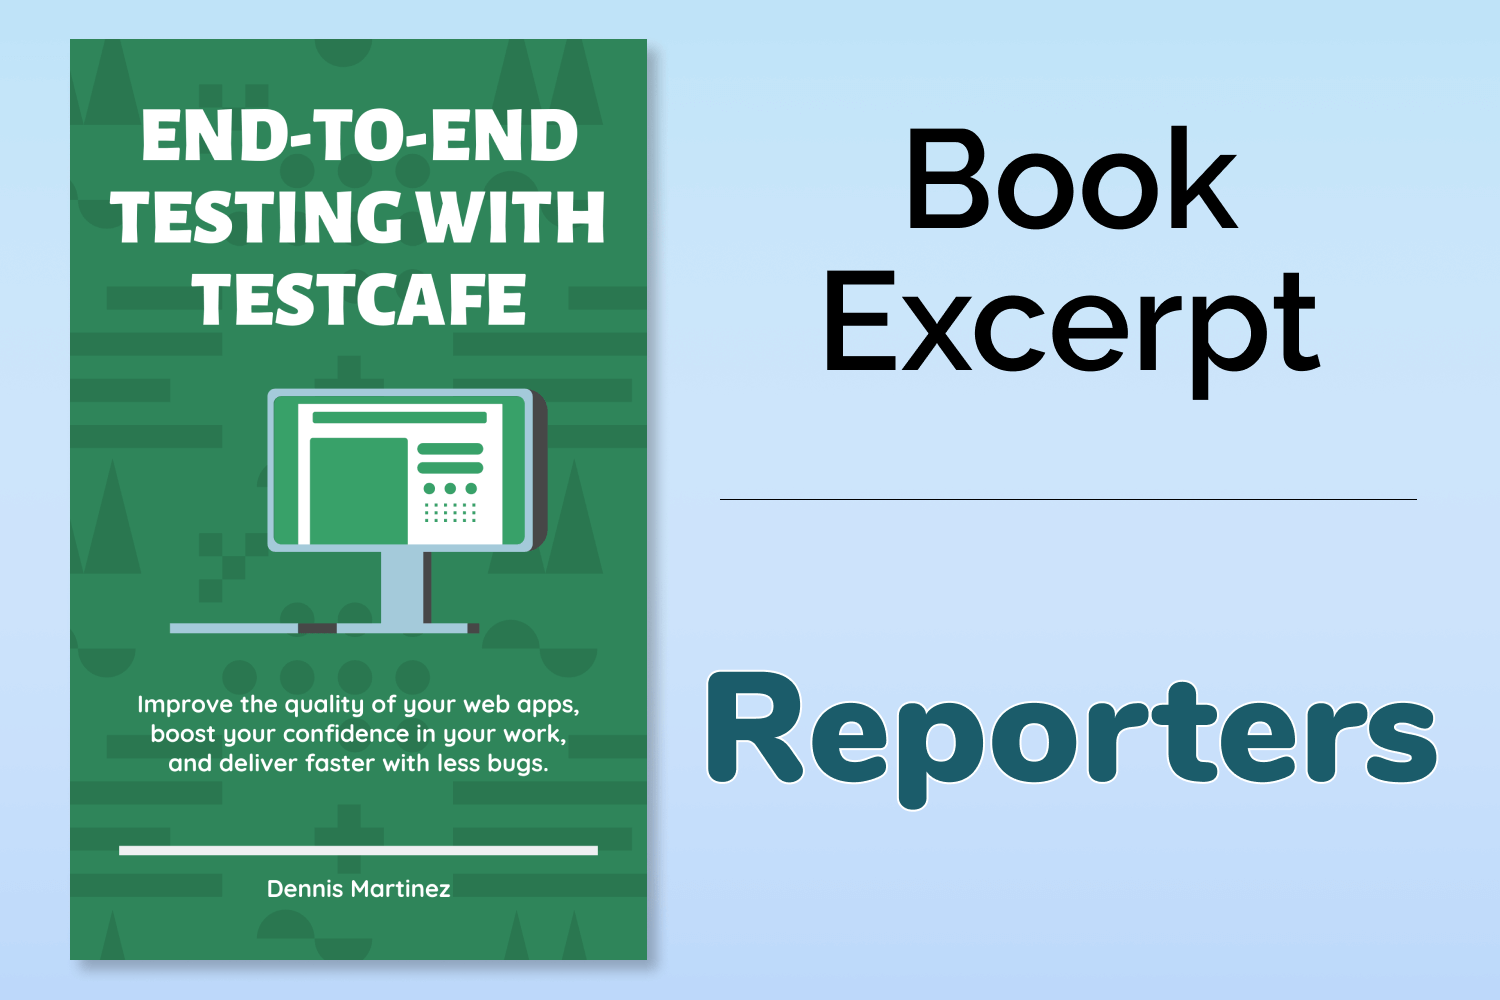 End-to-End Testing with TestCafe Book Excerpt: Reporters